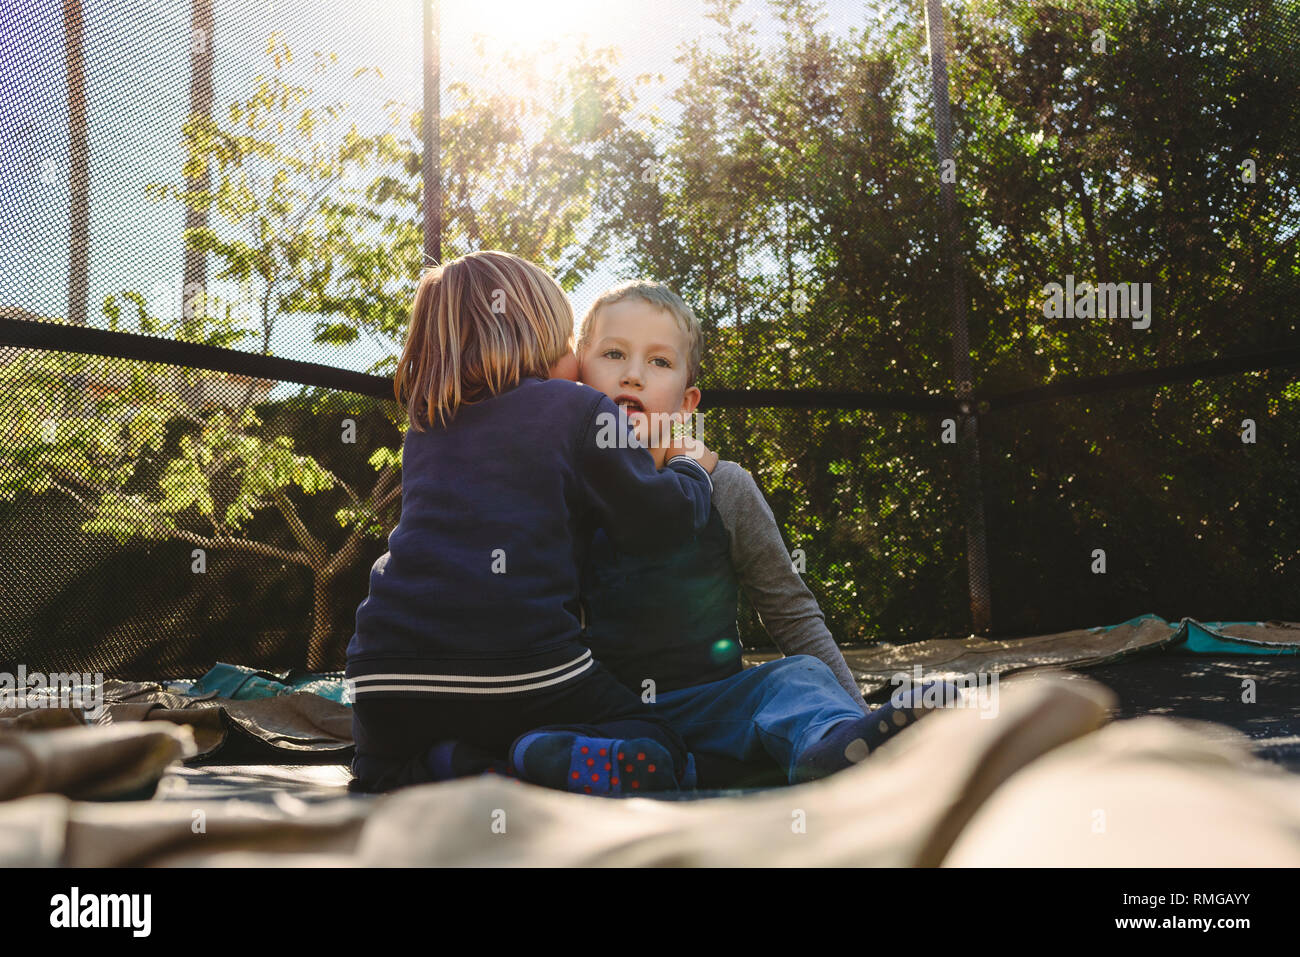 Two children friends accomplices plotting secret games in their spring break, friendship lifestyle concept in childhood. - Stock Image